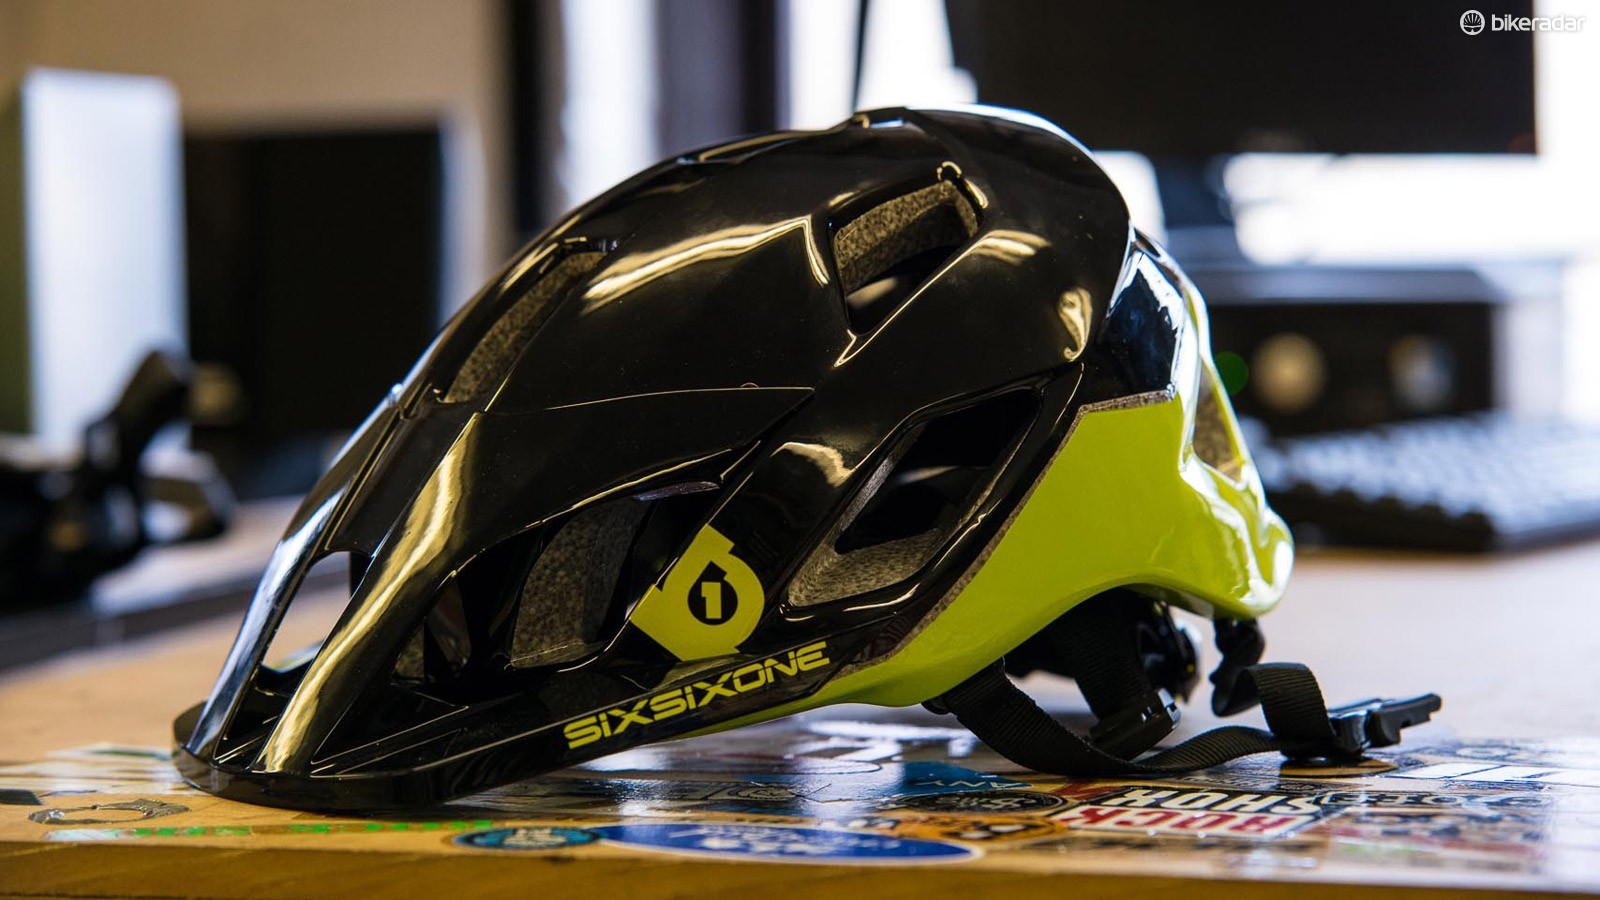 Six Six One Evo AM helmet